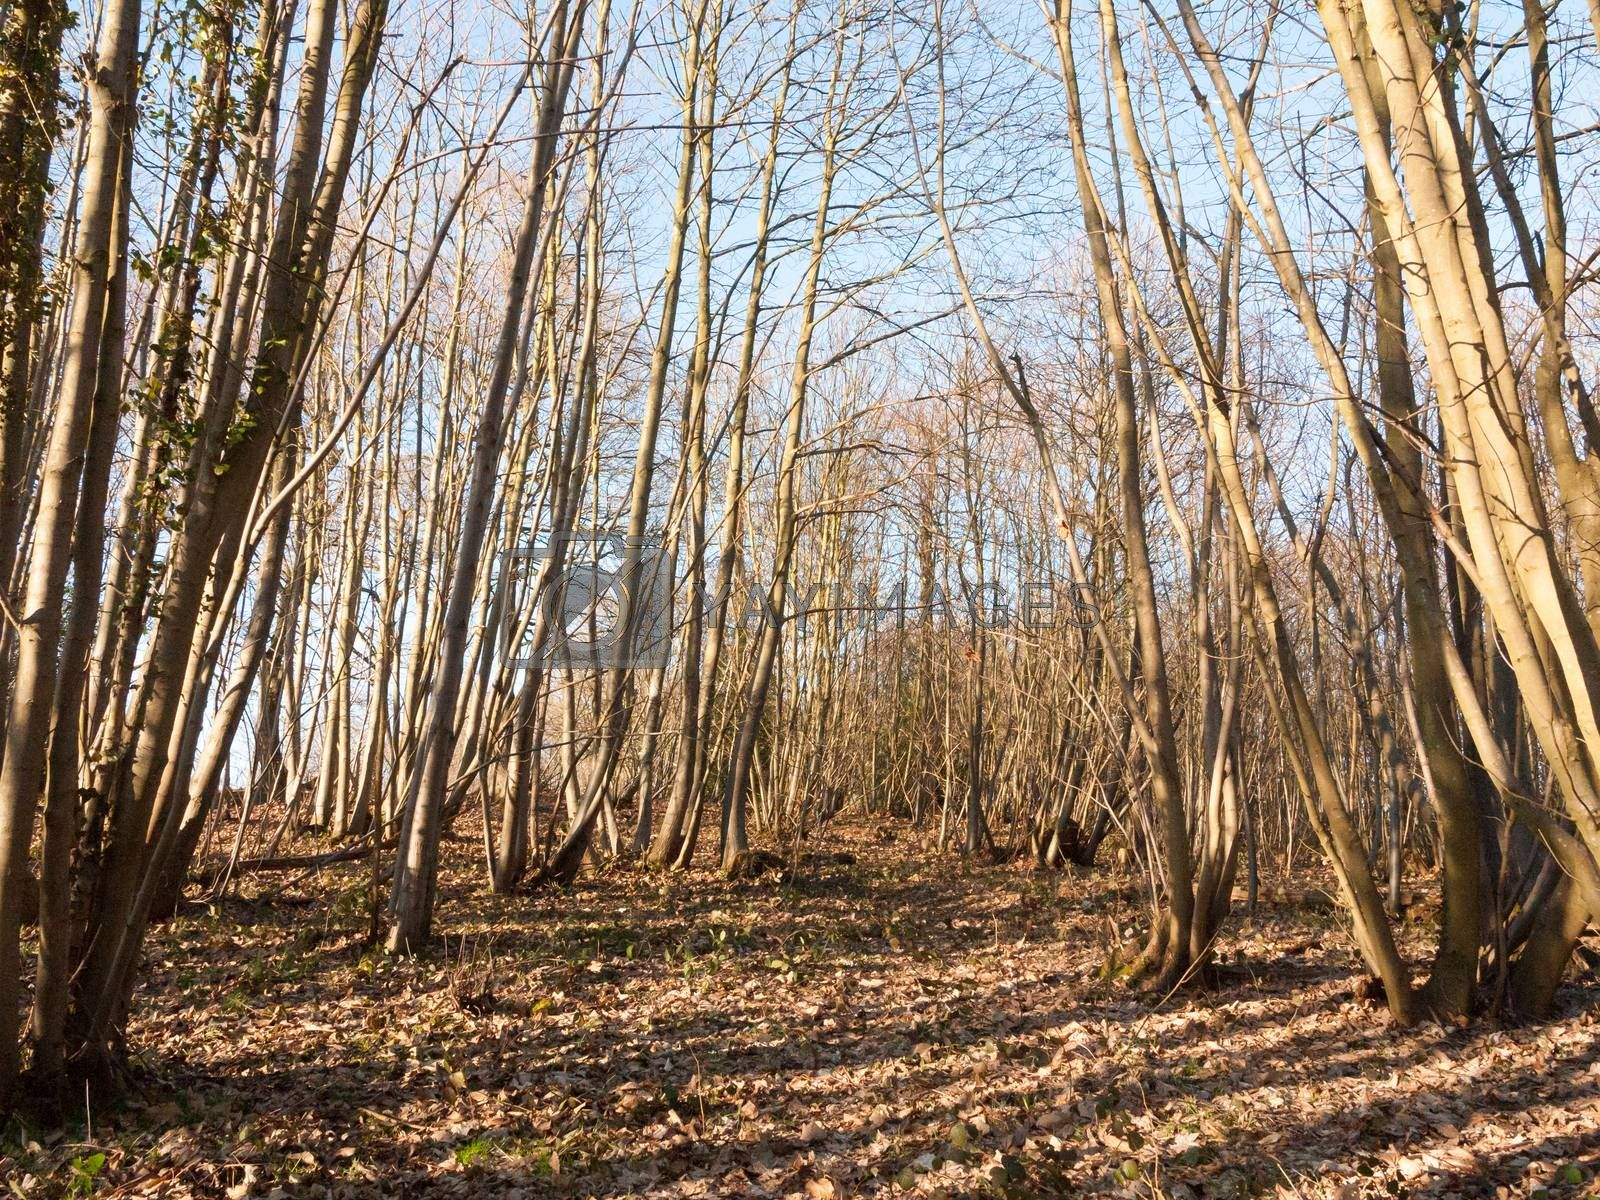 inside wood with many tree bare trunks tall forest woodland by callumrc